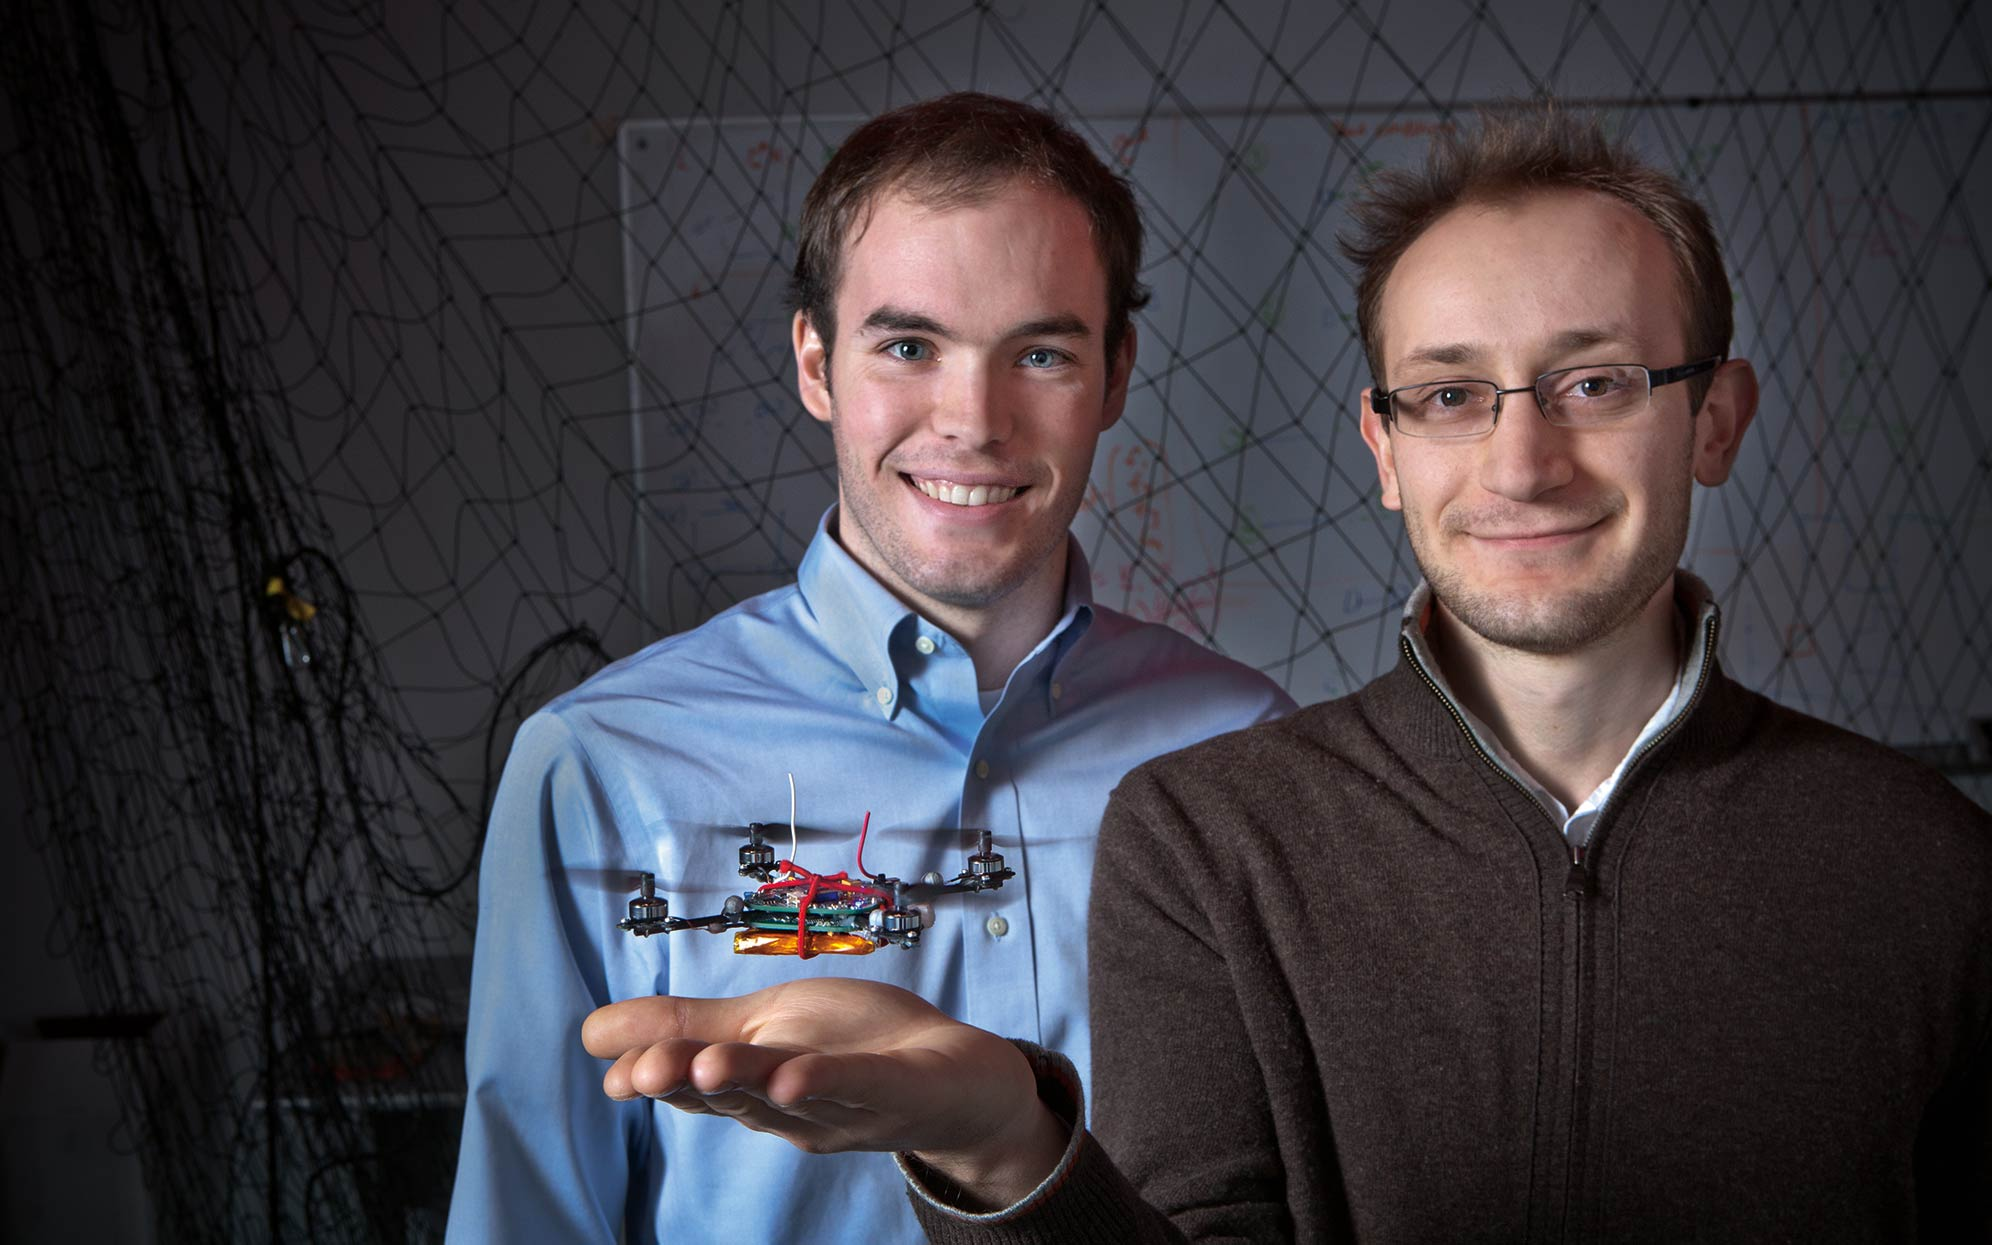 growing team of researchers and engineers aerial vehicles and robotic systems